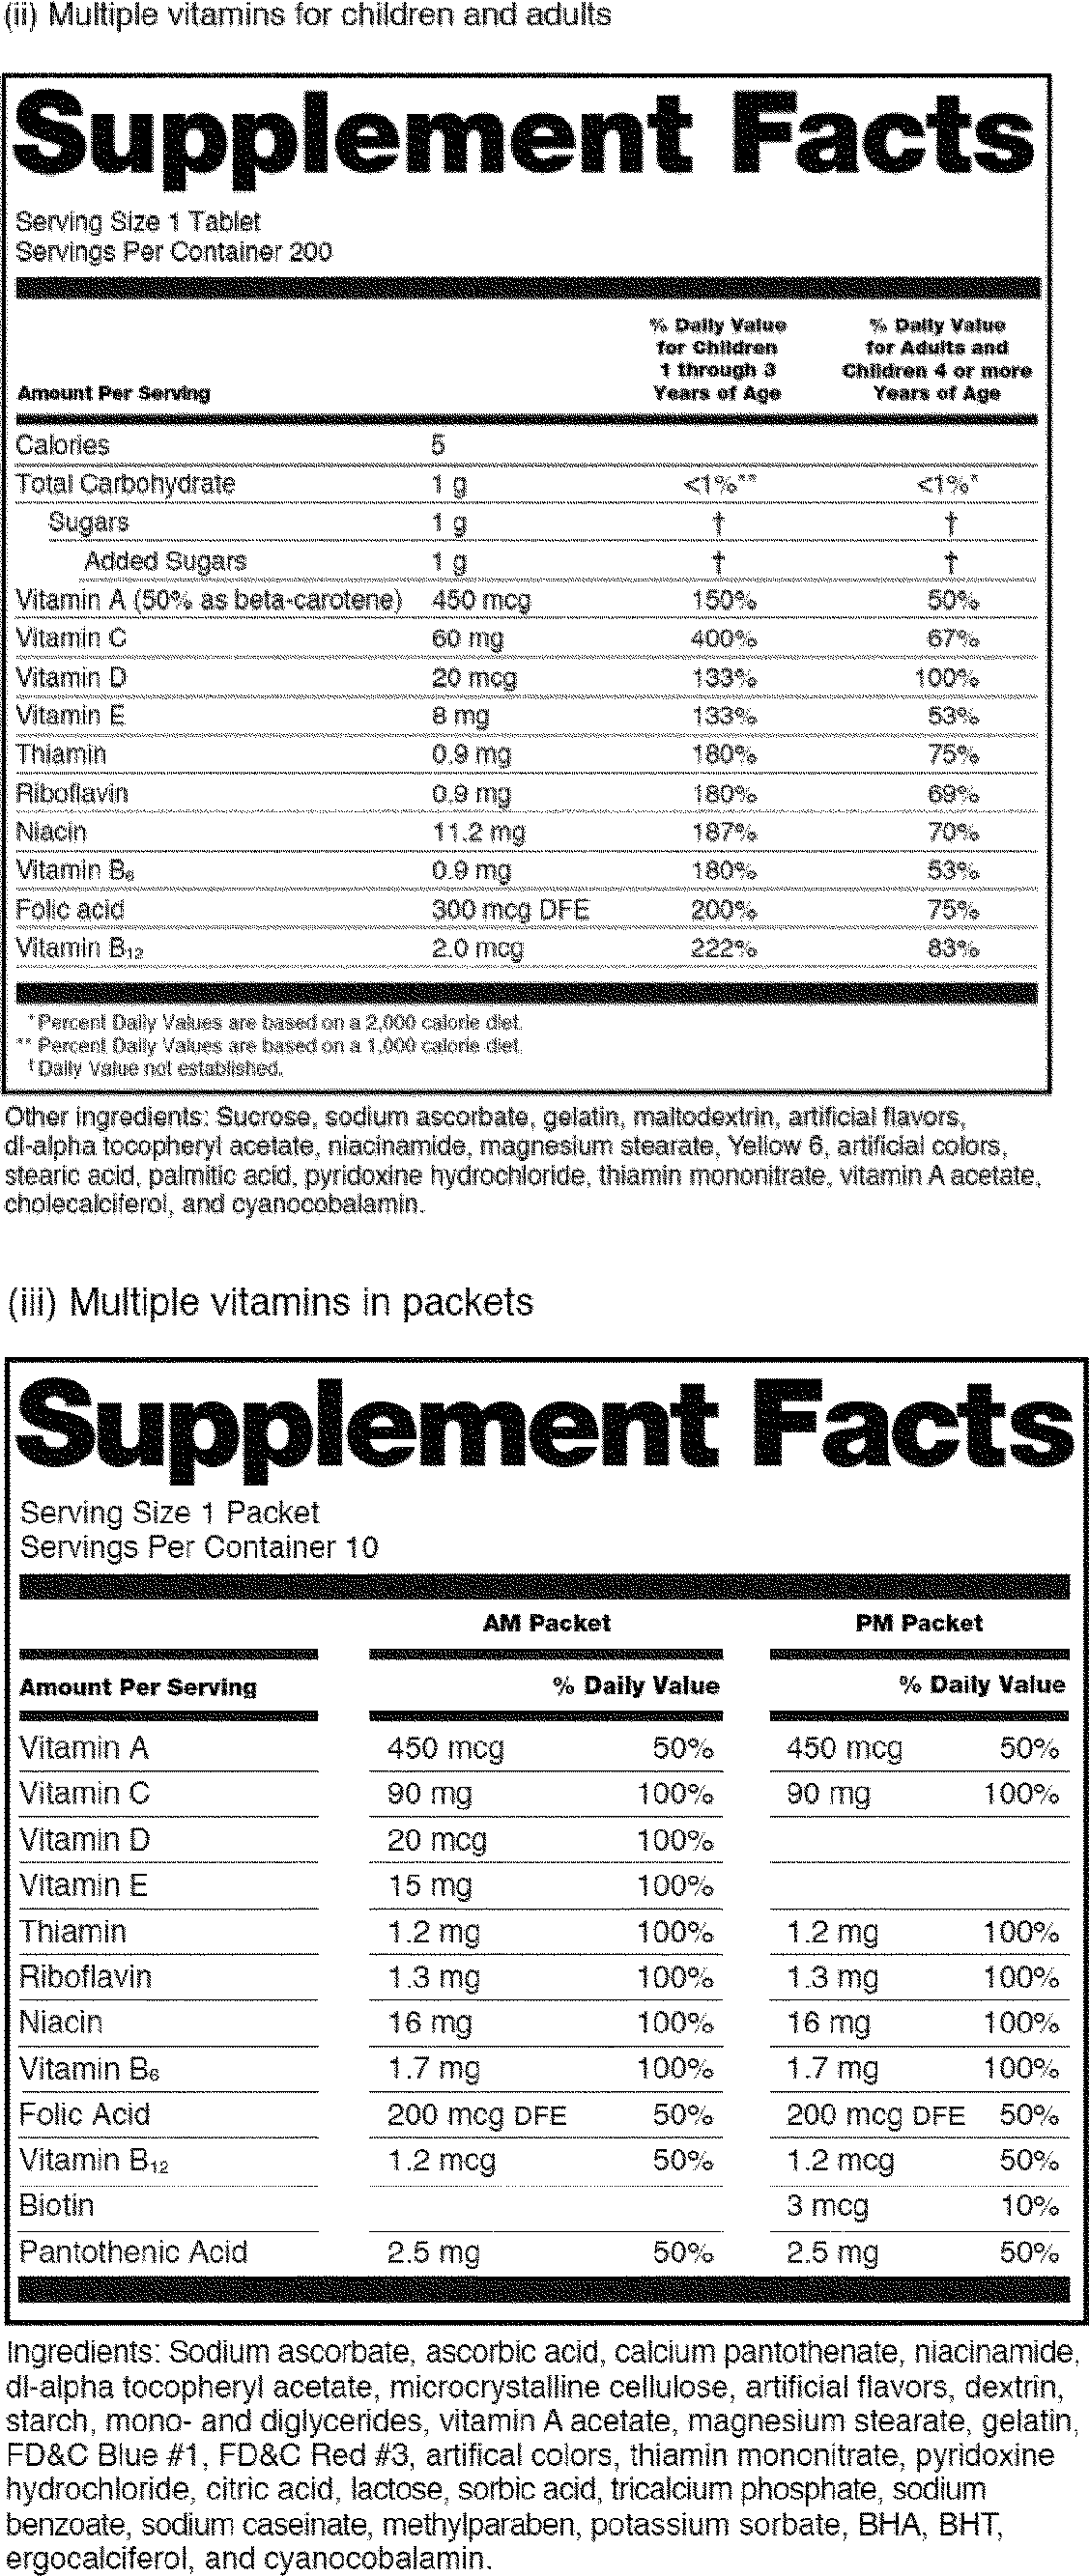 Fda nutrition facts label template nutrition ftempo for Supplement facts template